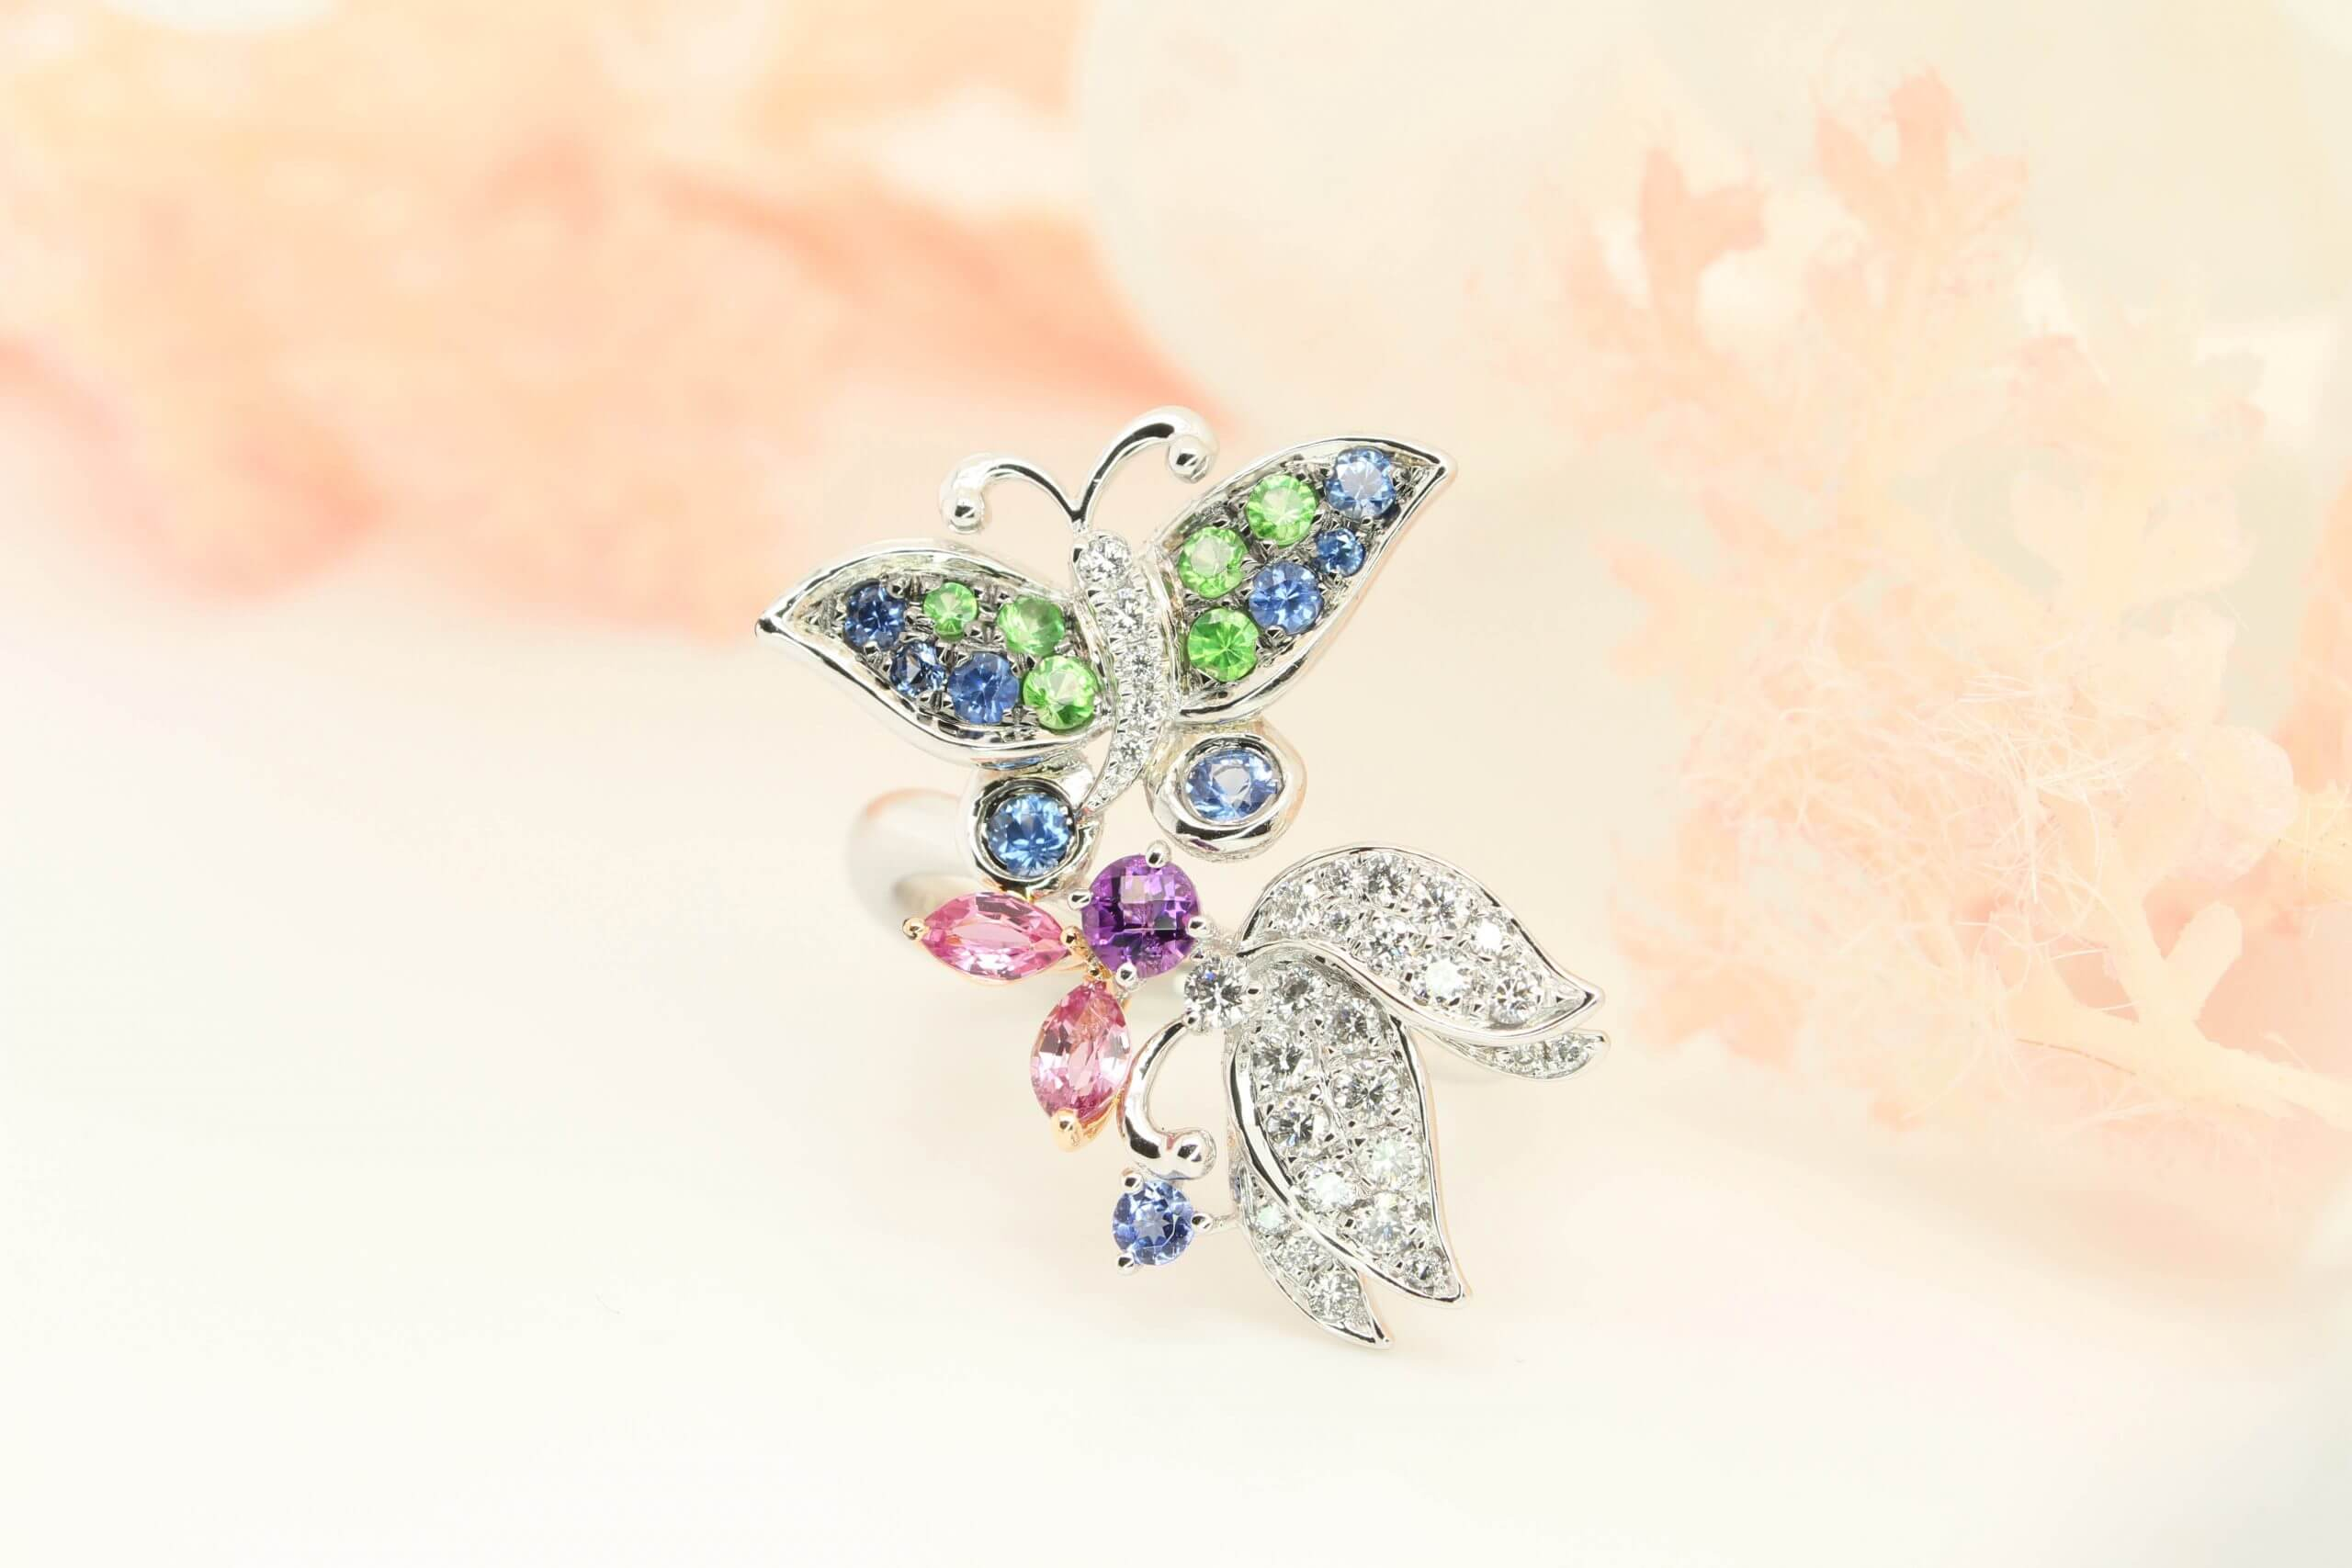 Customised ring bearing a butterfly theme symbolises feminism and the inherent beauty of the person. Butterflies symbolise transformation in life and are believed to bring serenity and happiness to life. The fine detailing and delicate design make this natural inspired design fine jewellery with coloured gemstone special and one of a kind.